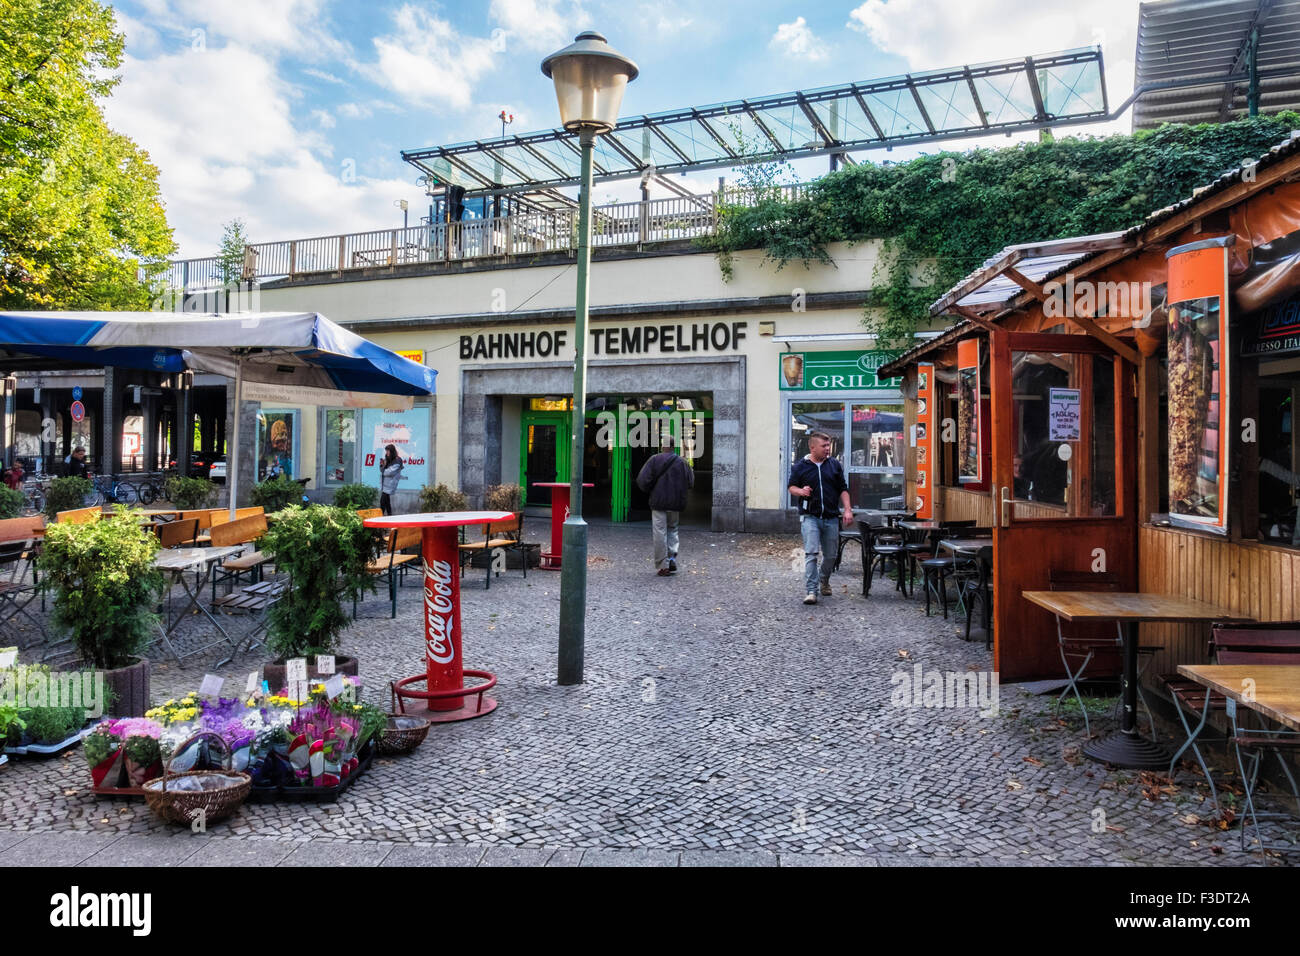 berlin bahnhof tempelhof s bahn railway station exterior plant shop stock photo royalty free. Black Bedroom Furniture Sets. Home Design Ideas